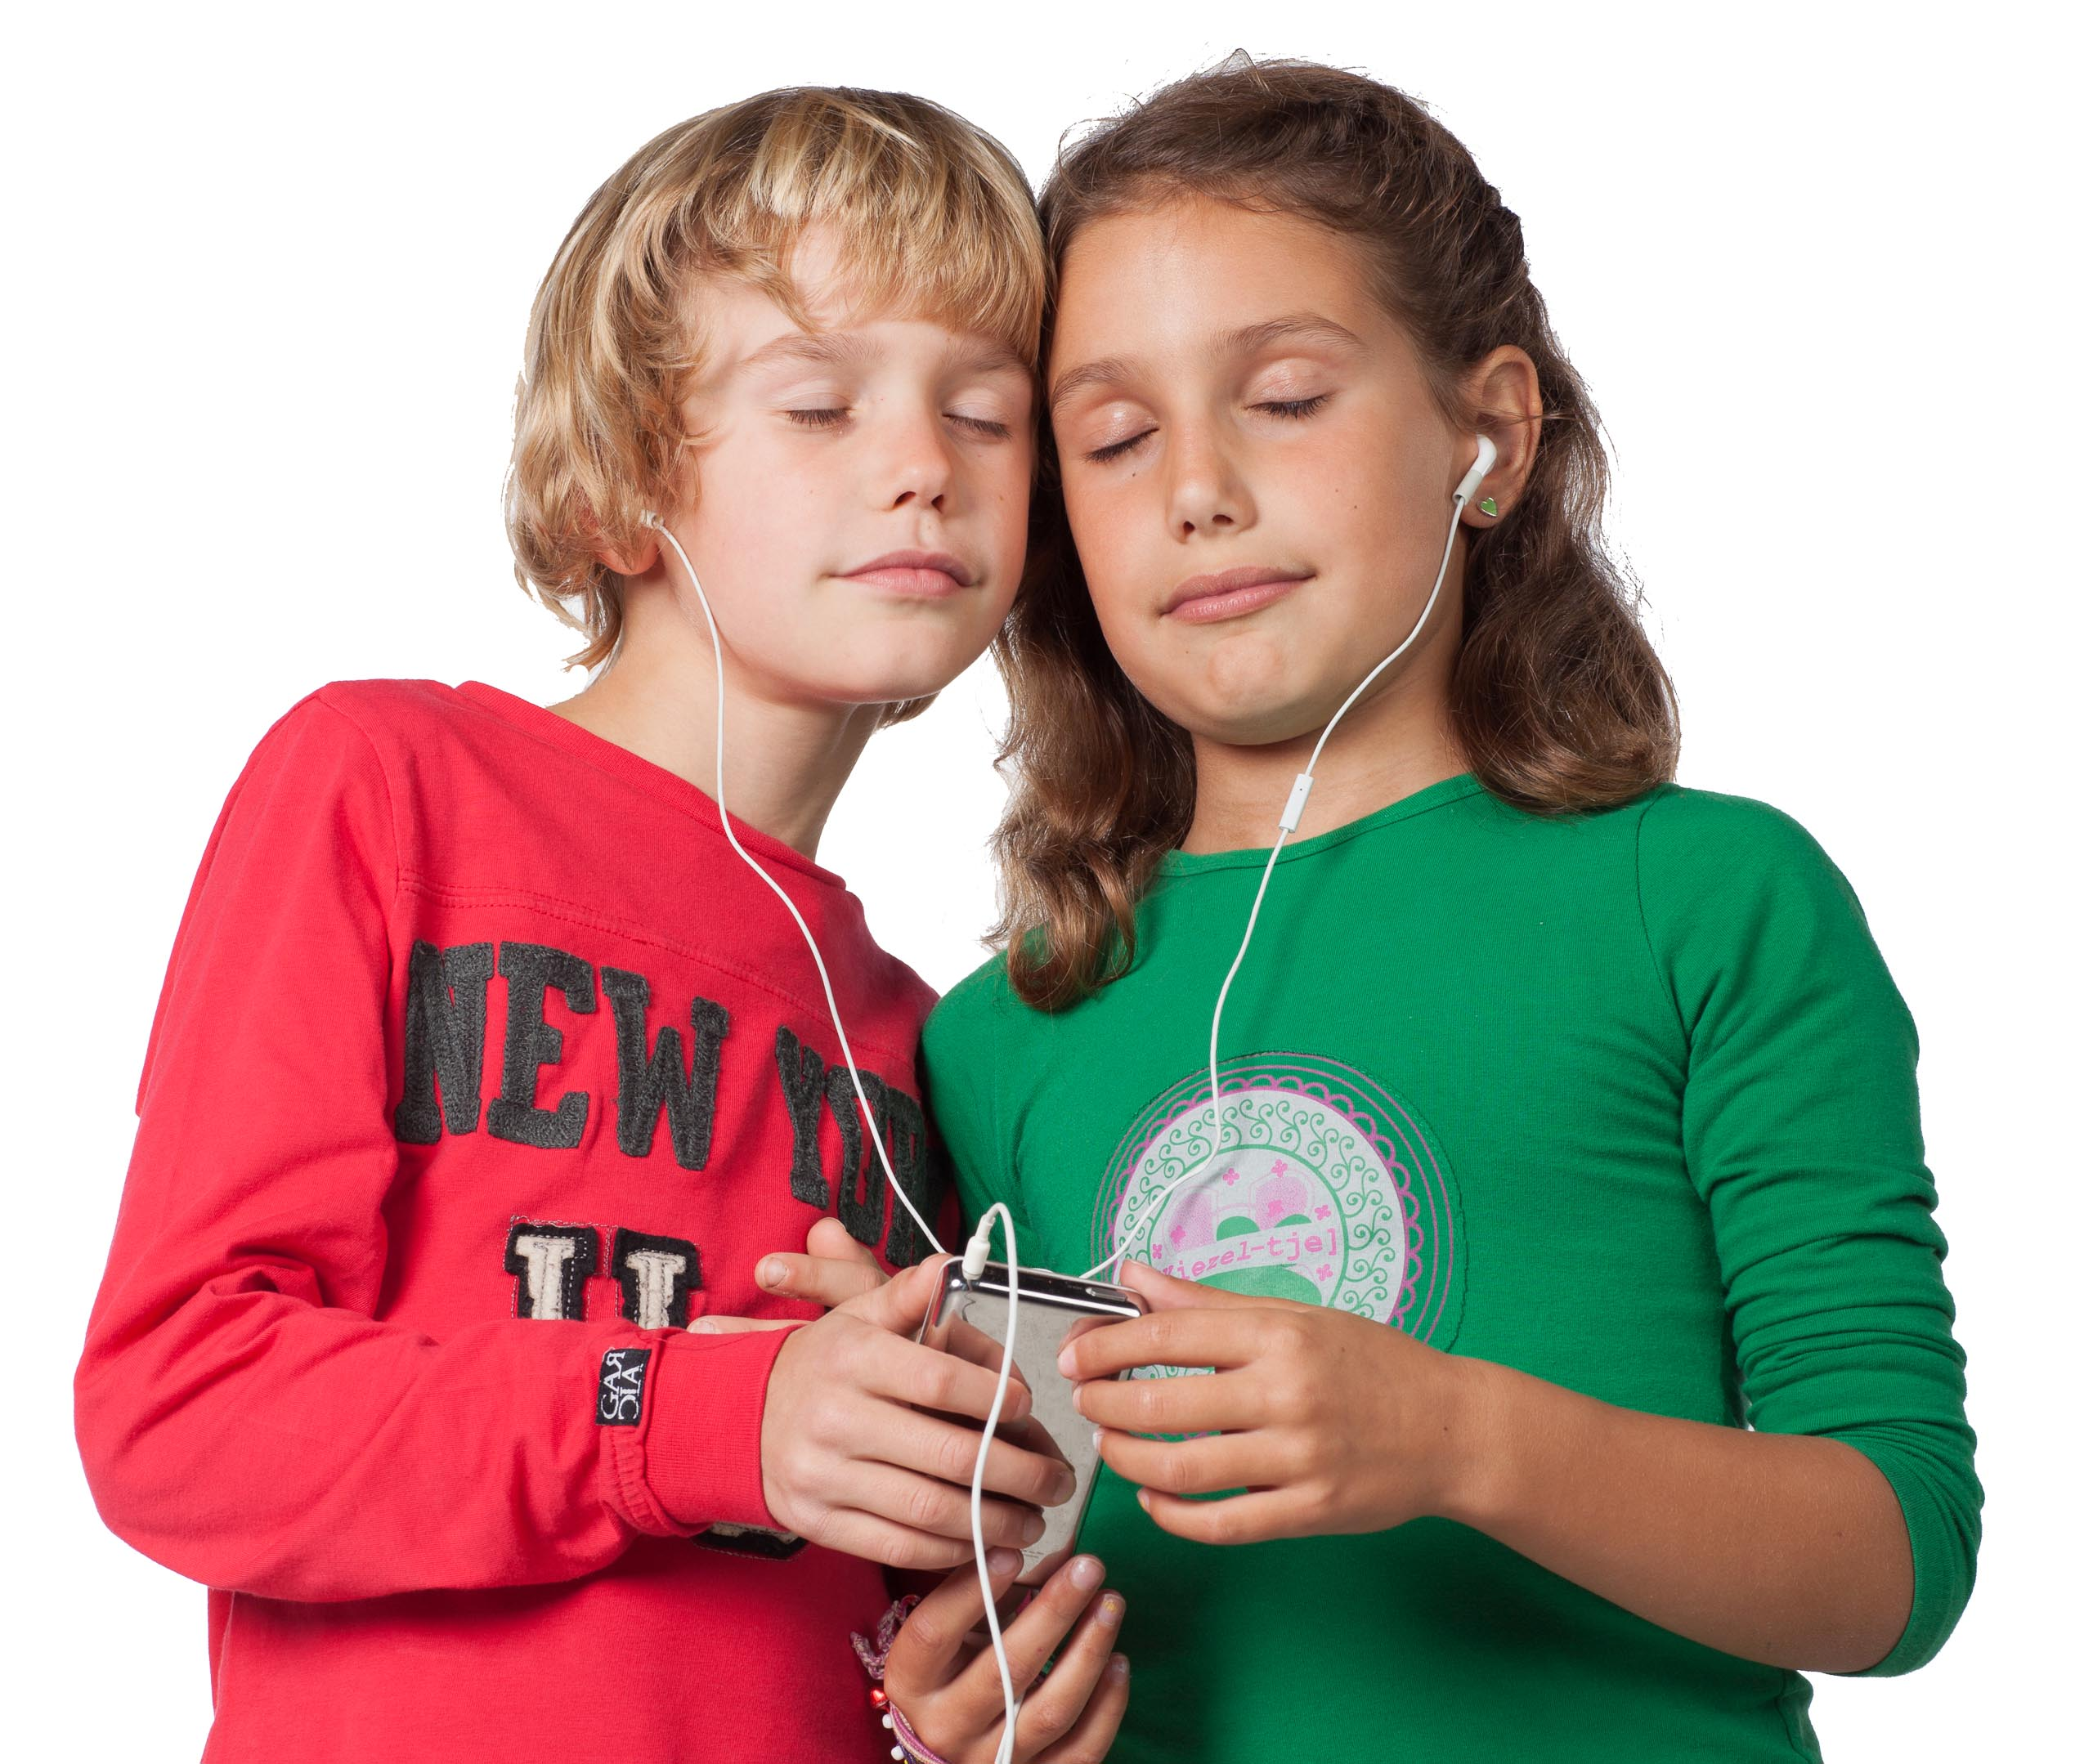 Boy and girl listening to music on the same device.